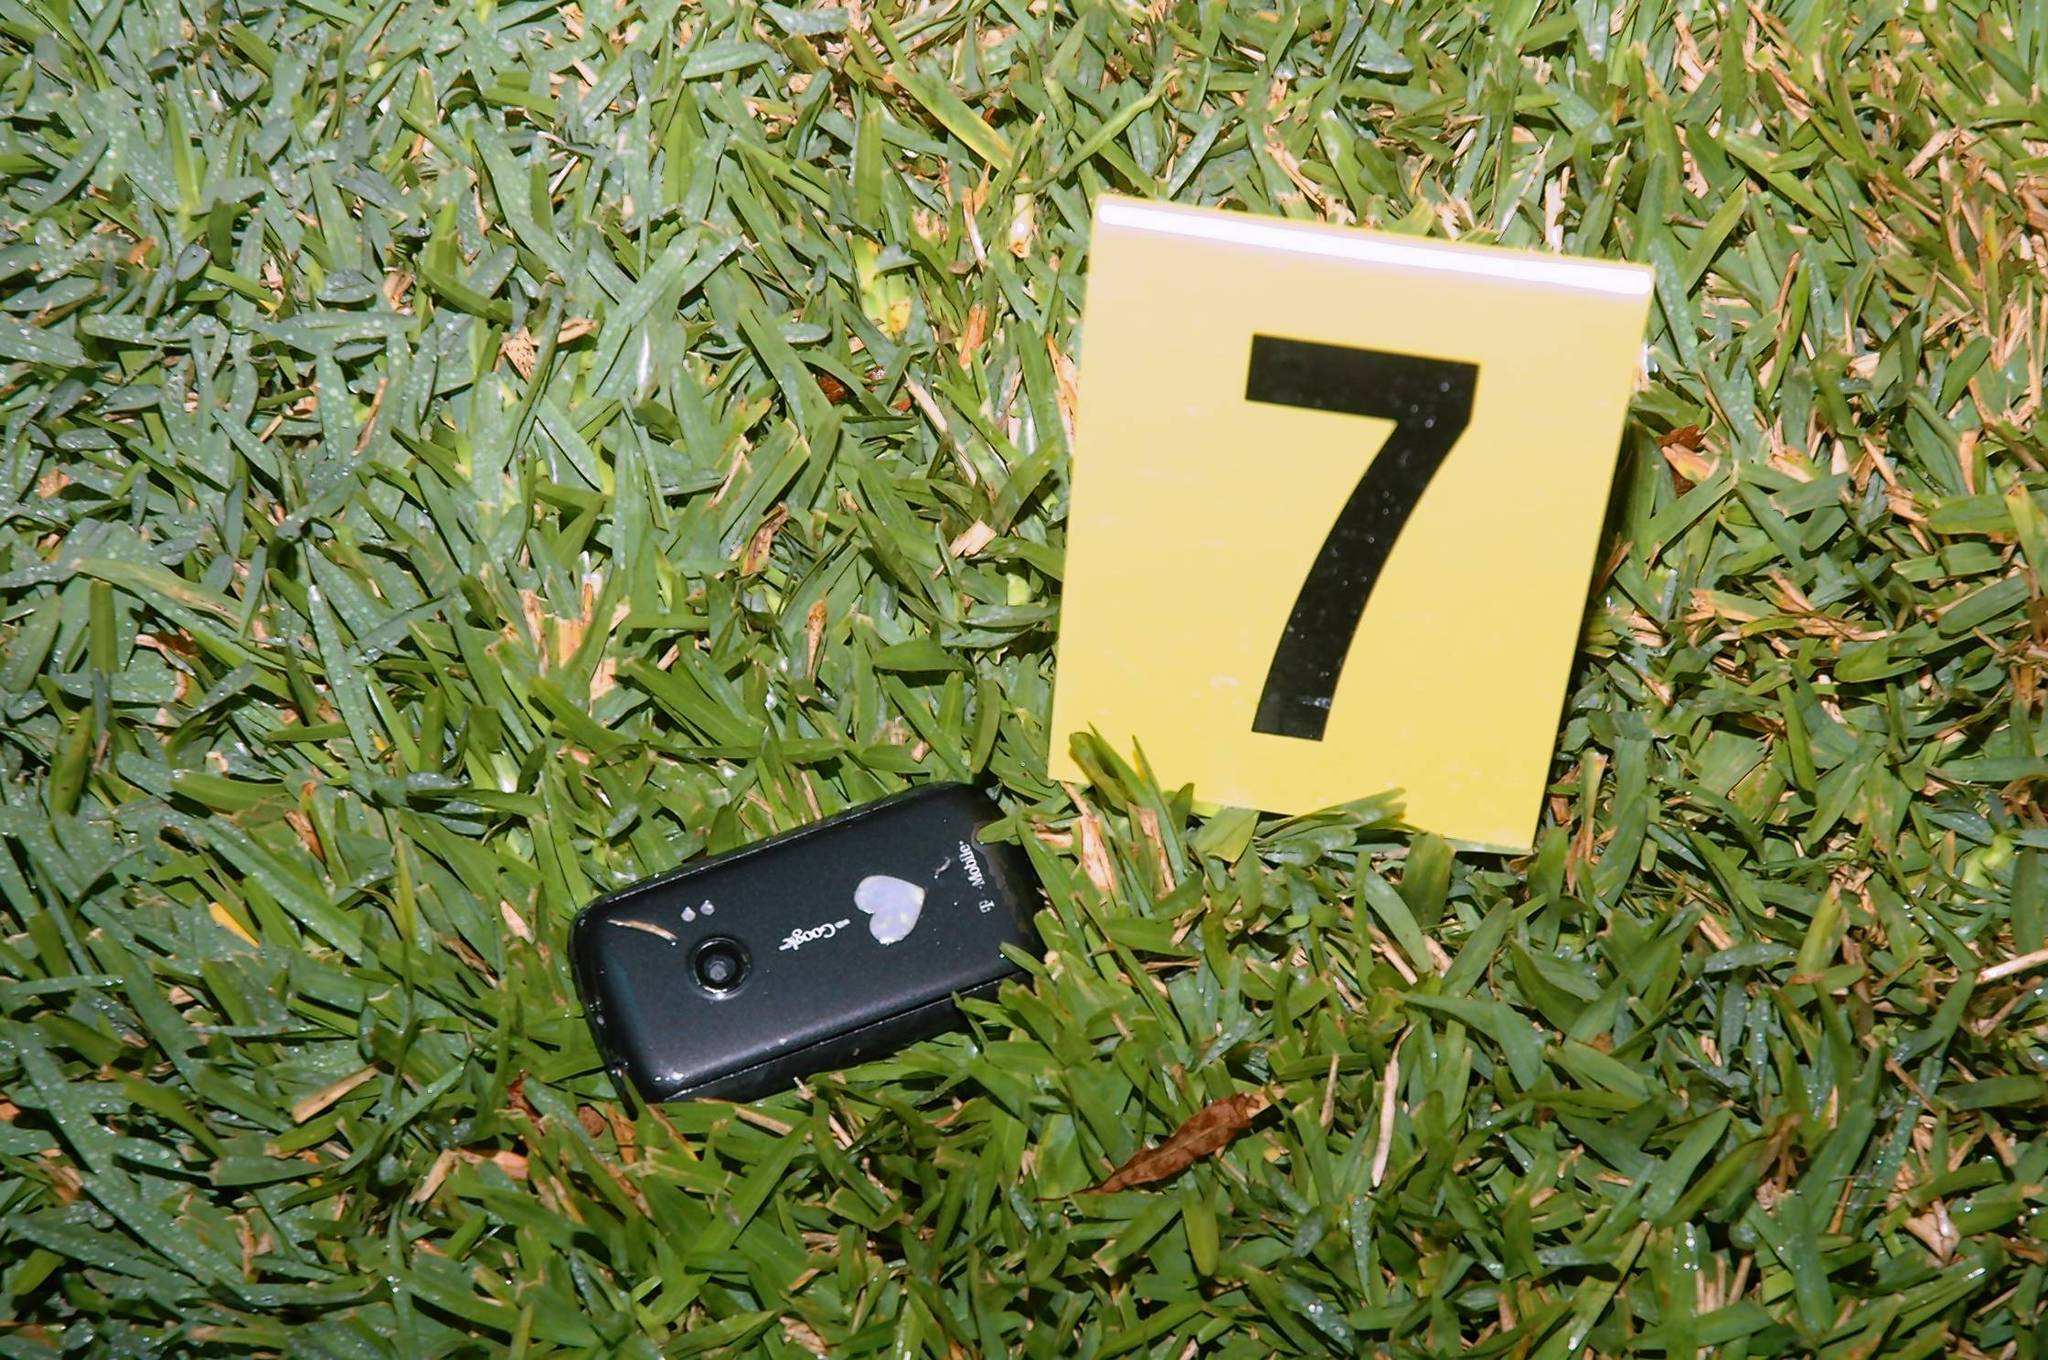 Trayvon Martin's cellphone was found in the grass near where he was shot. (Office of Special Prosecutor Angela Corey)